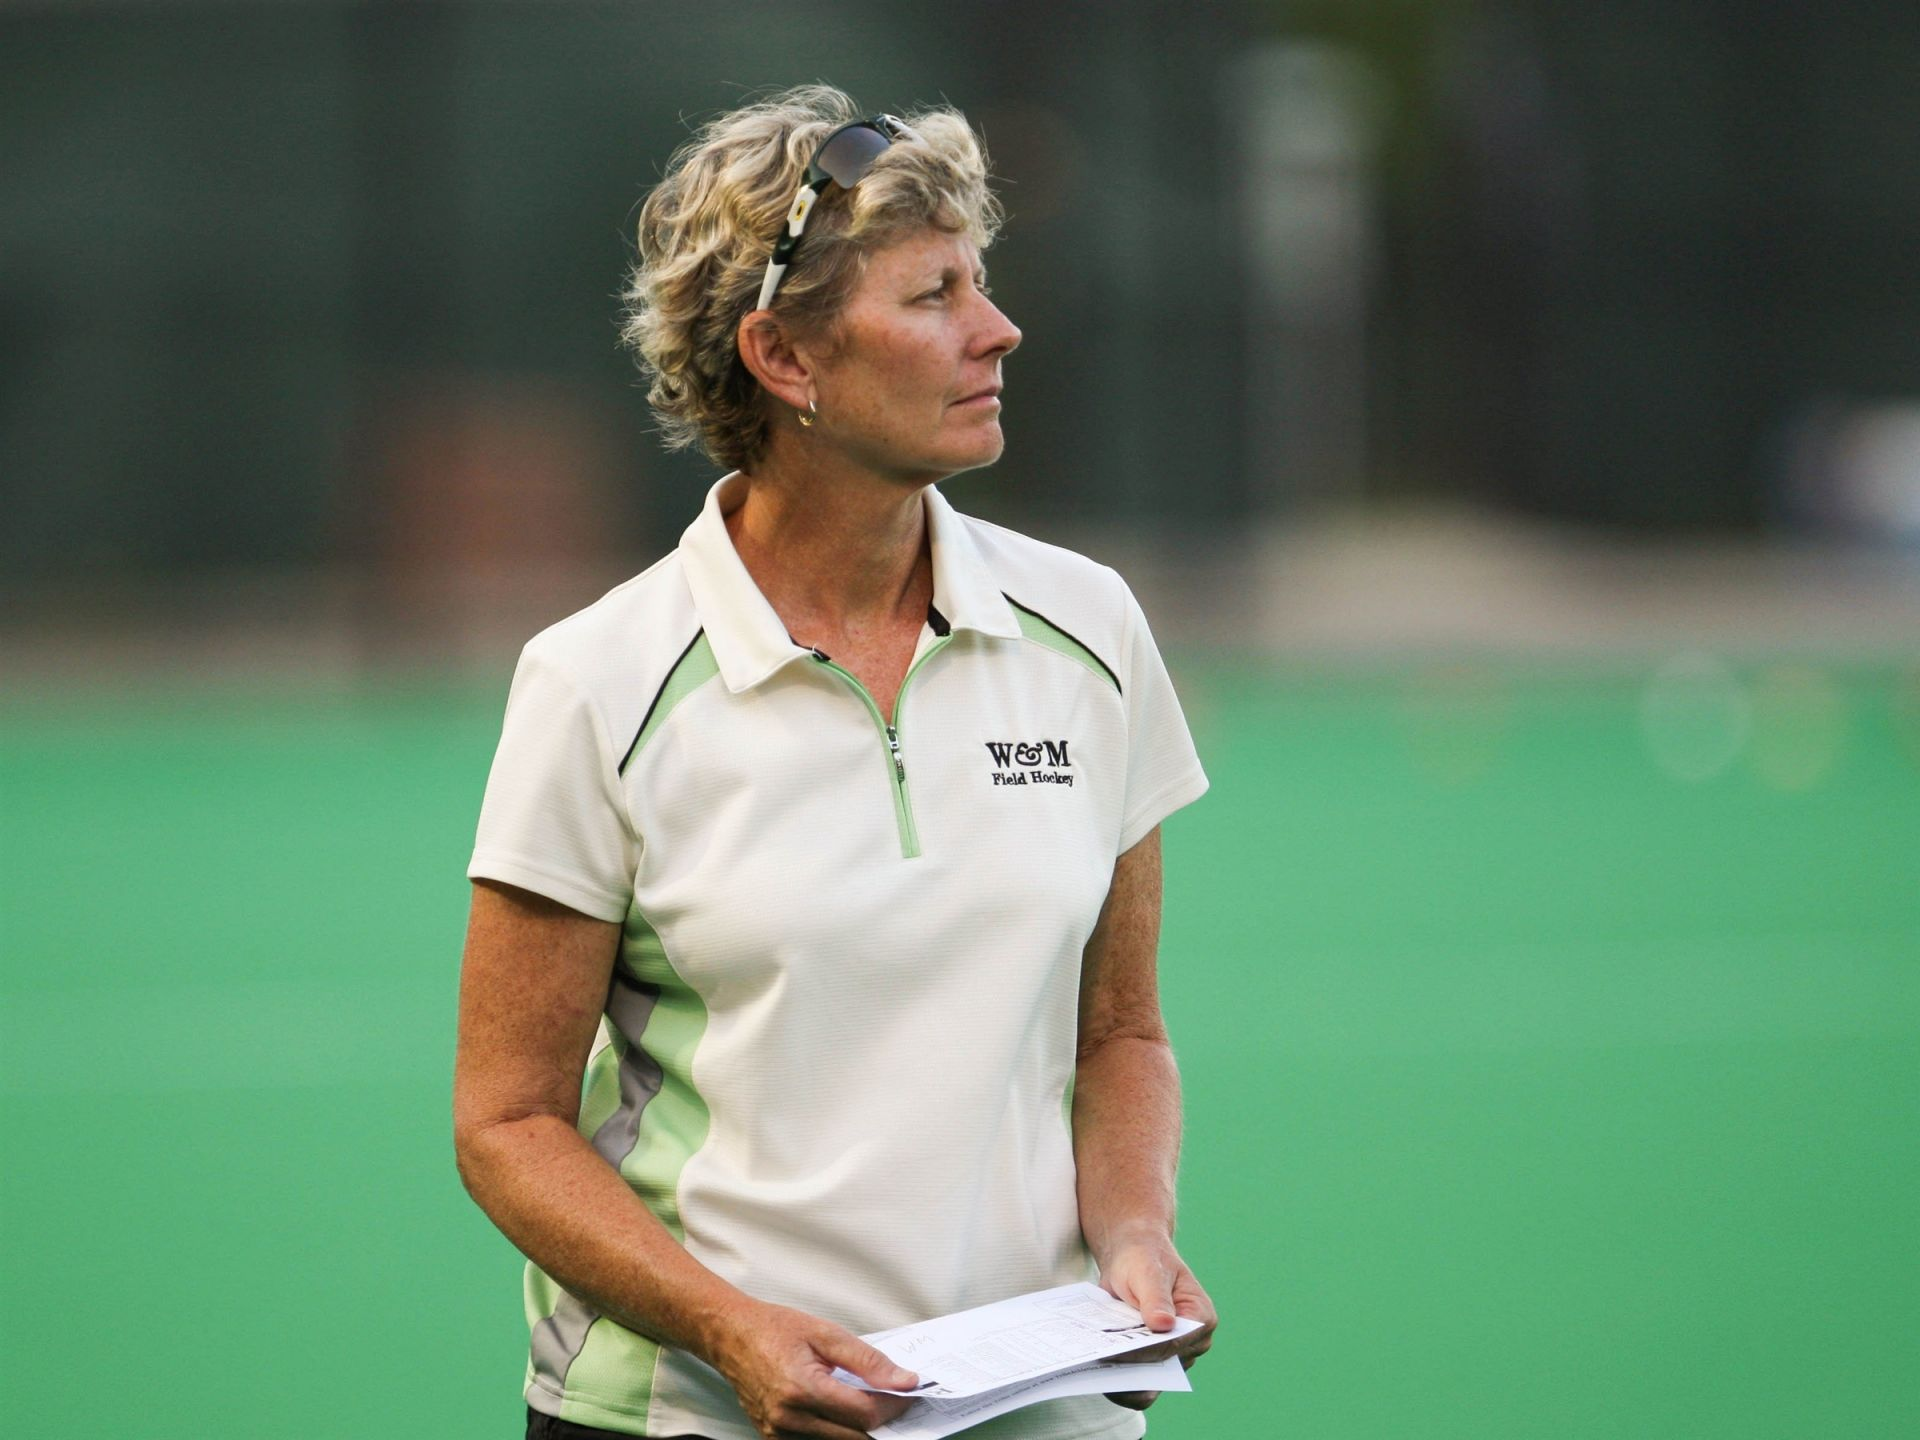 Former William & Mary field hockey coach, Peel is now a senior athletic administrator. She is one of just seven college field hockey coaches to reach 30 seasons, and just the 13th coach in Division I to surpass 300 wins. Peel coached 563 matches, the 10th-most matches of any field hockey coach in the nation